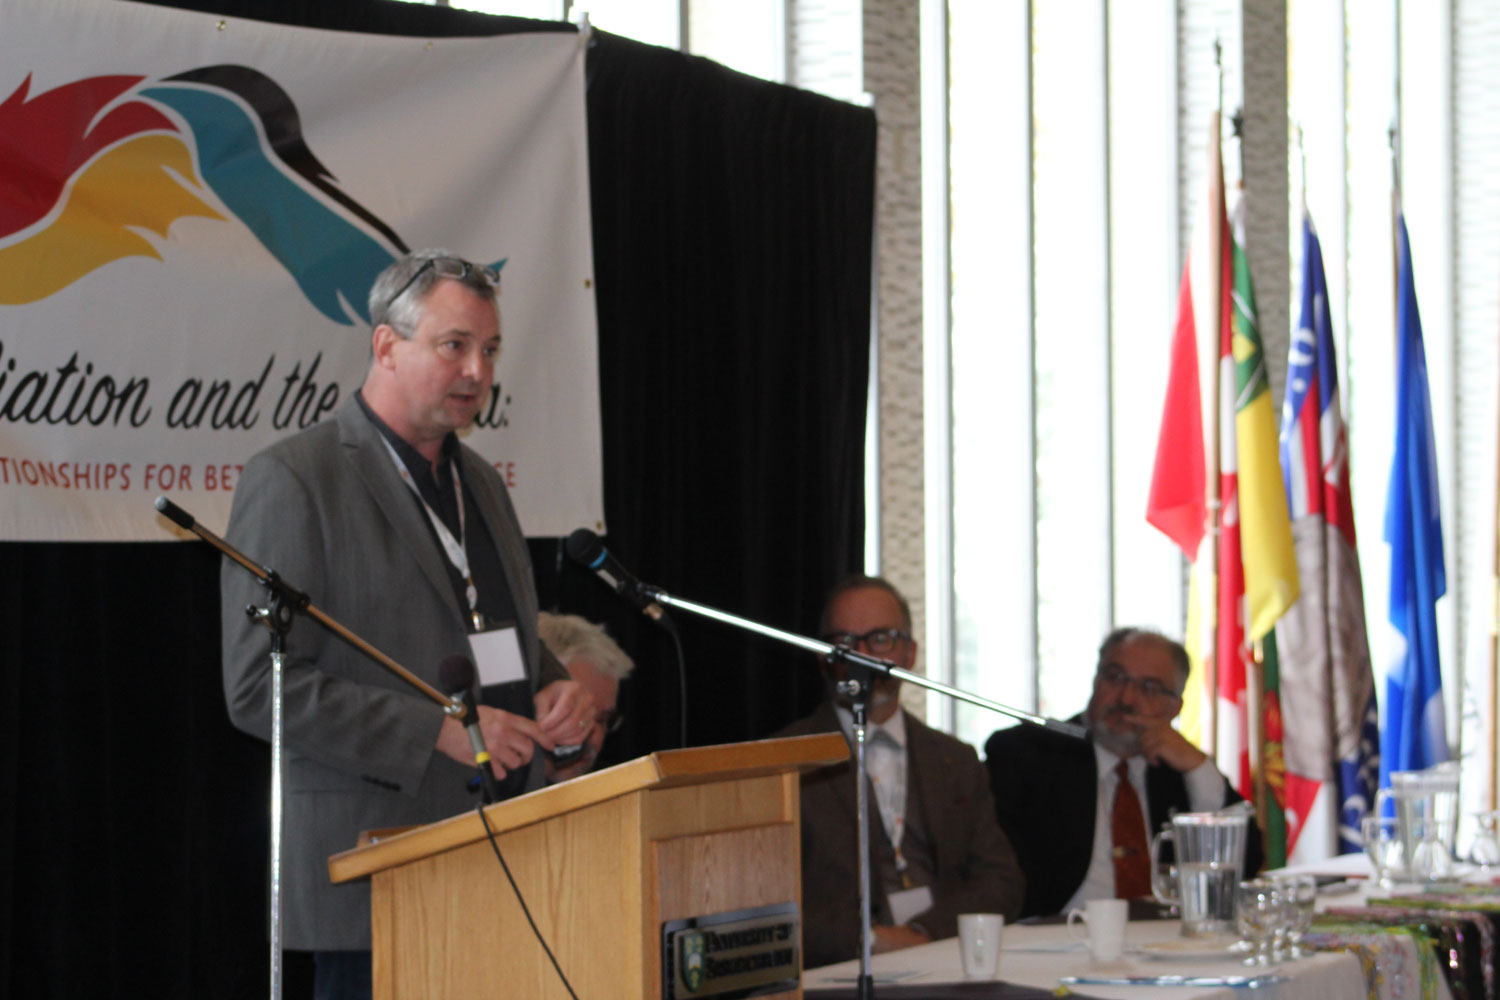 John Lagimodiere speaking during a panel discussion.